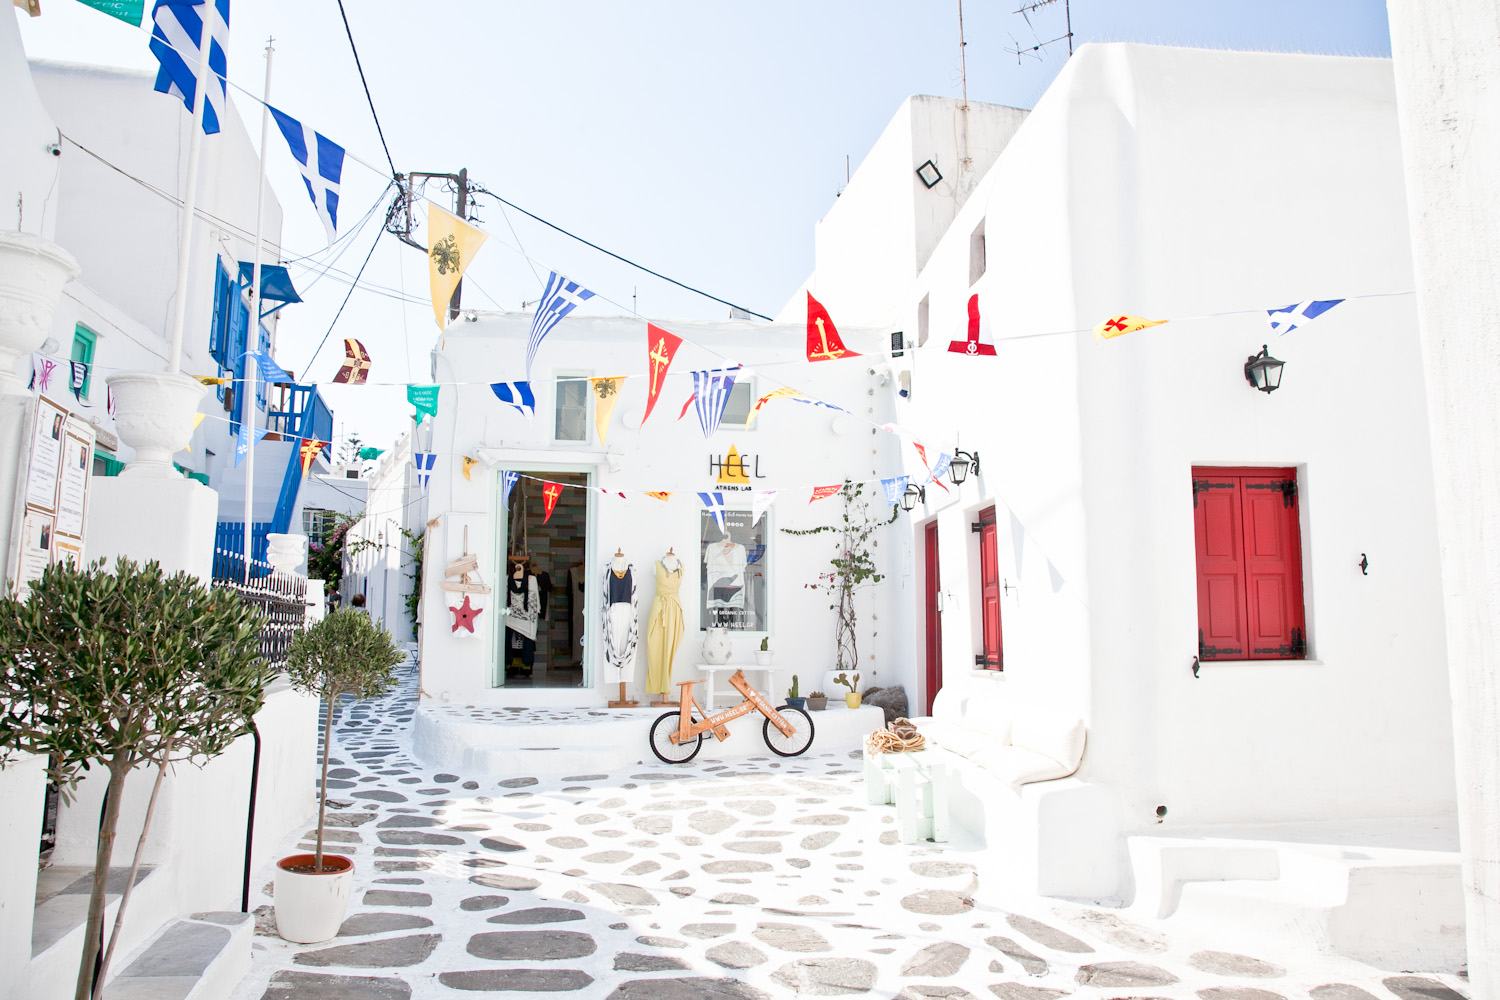 IMG_3839-mykonos-greece-cruise-day-trip-travel-trisa-taro.jpg